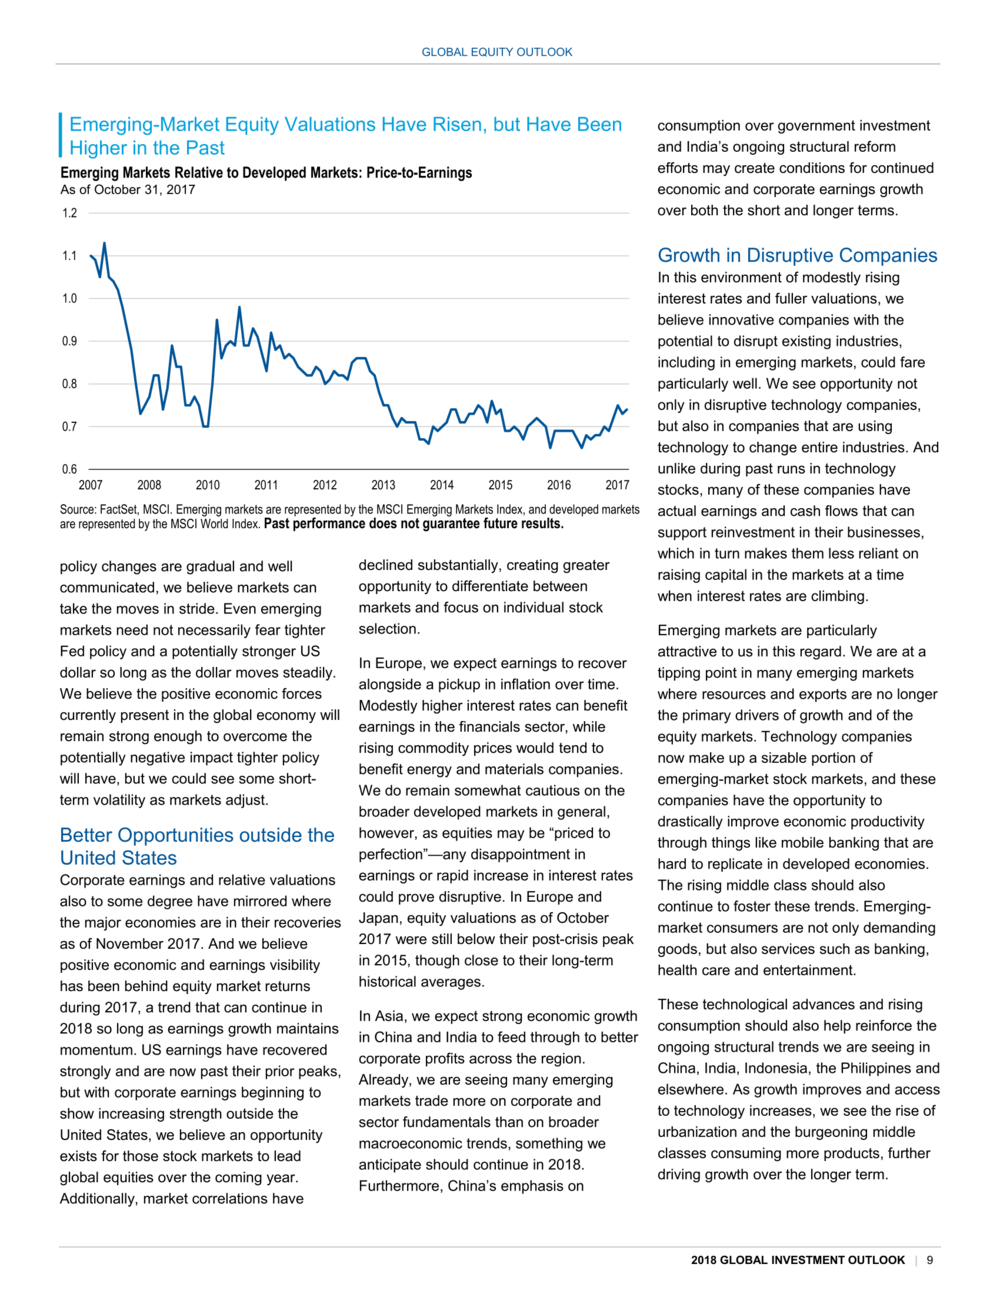 Franklin Templeton 2018 Outlook-11.png